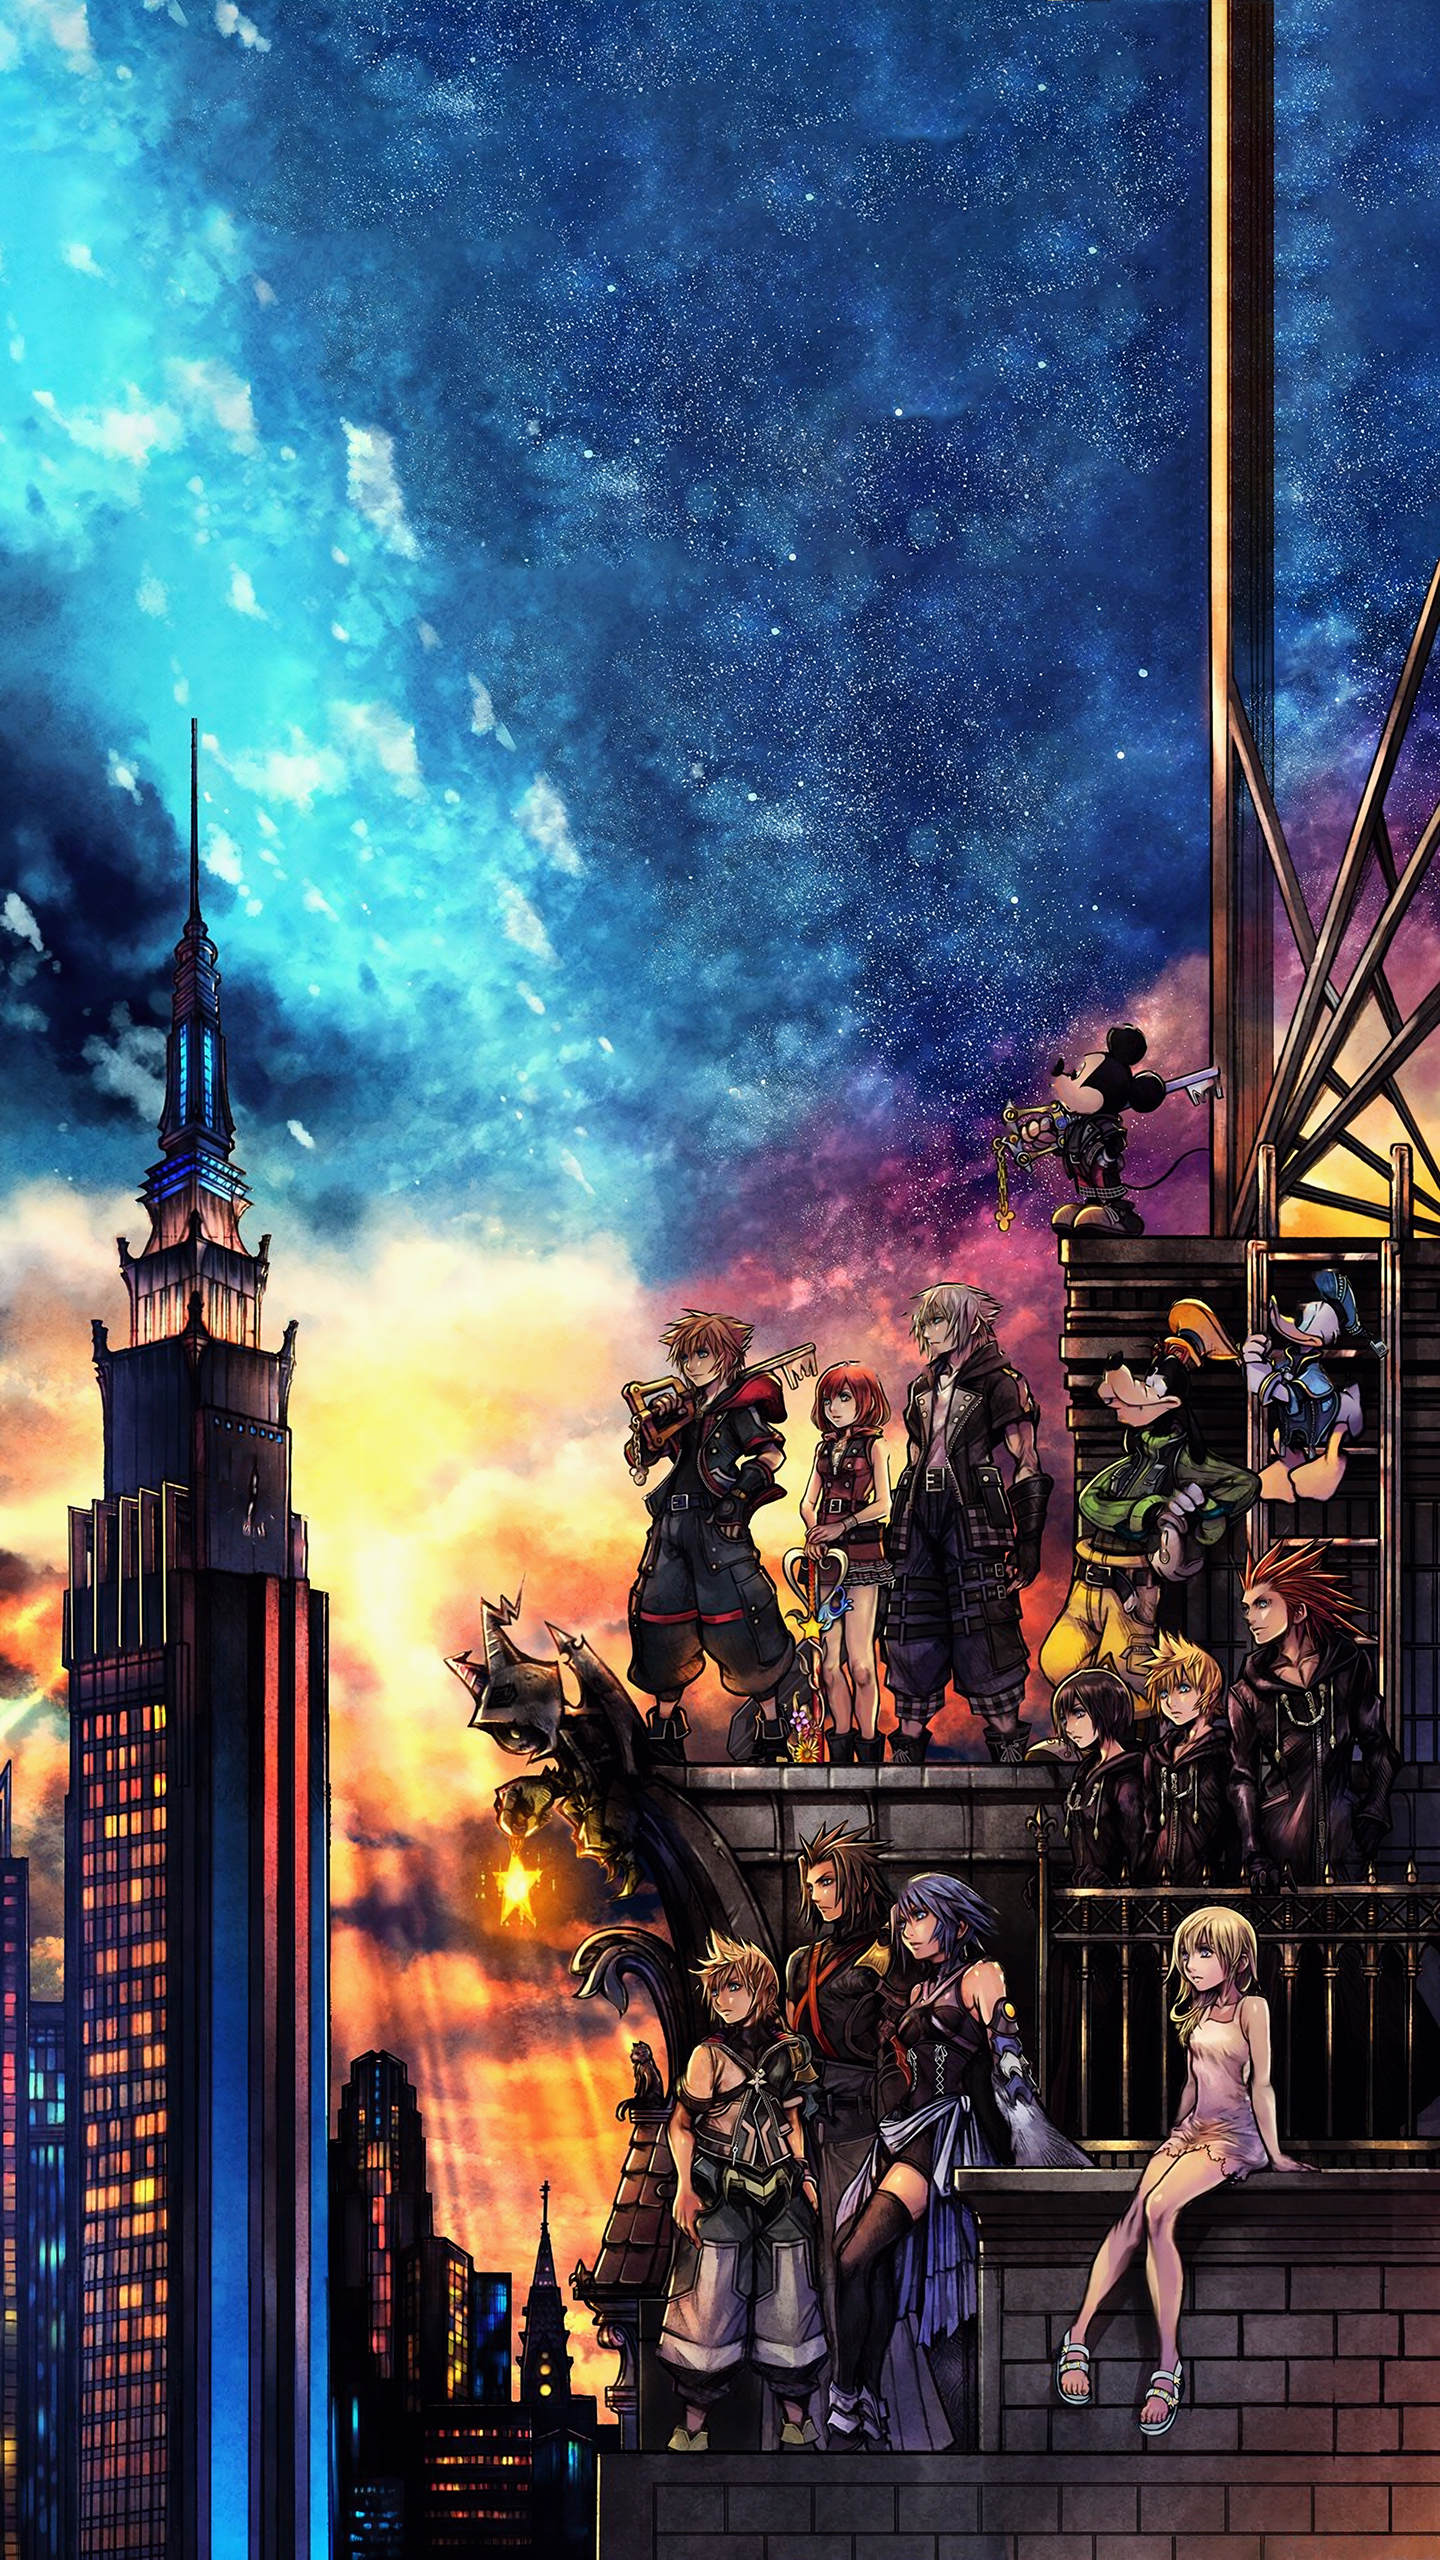 Kingdom Hearts 3 2560x1440 Mobilewallpaper 2560x1440 Hearts Kingdom Mobilewallpaper Kingdom Hearts Kingdom Hearts Wallpaper Kingdom Hearts 3